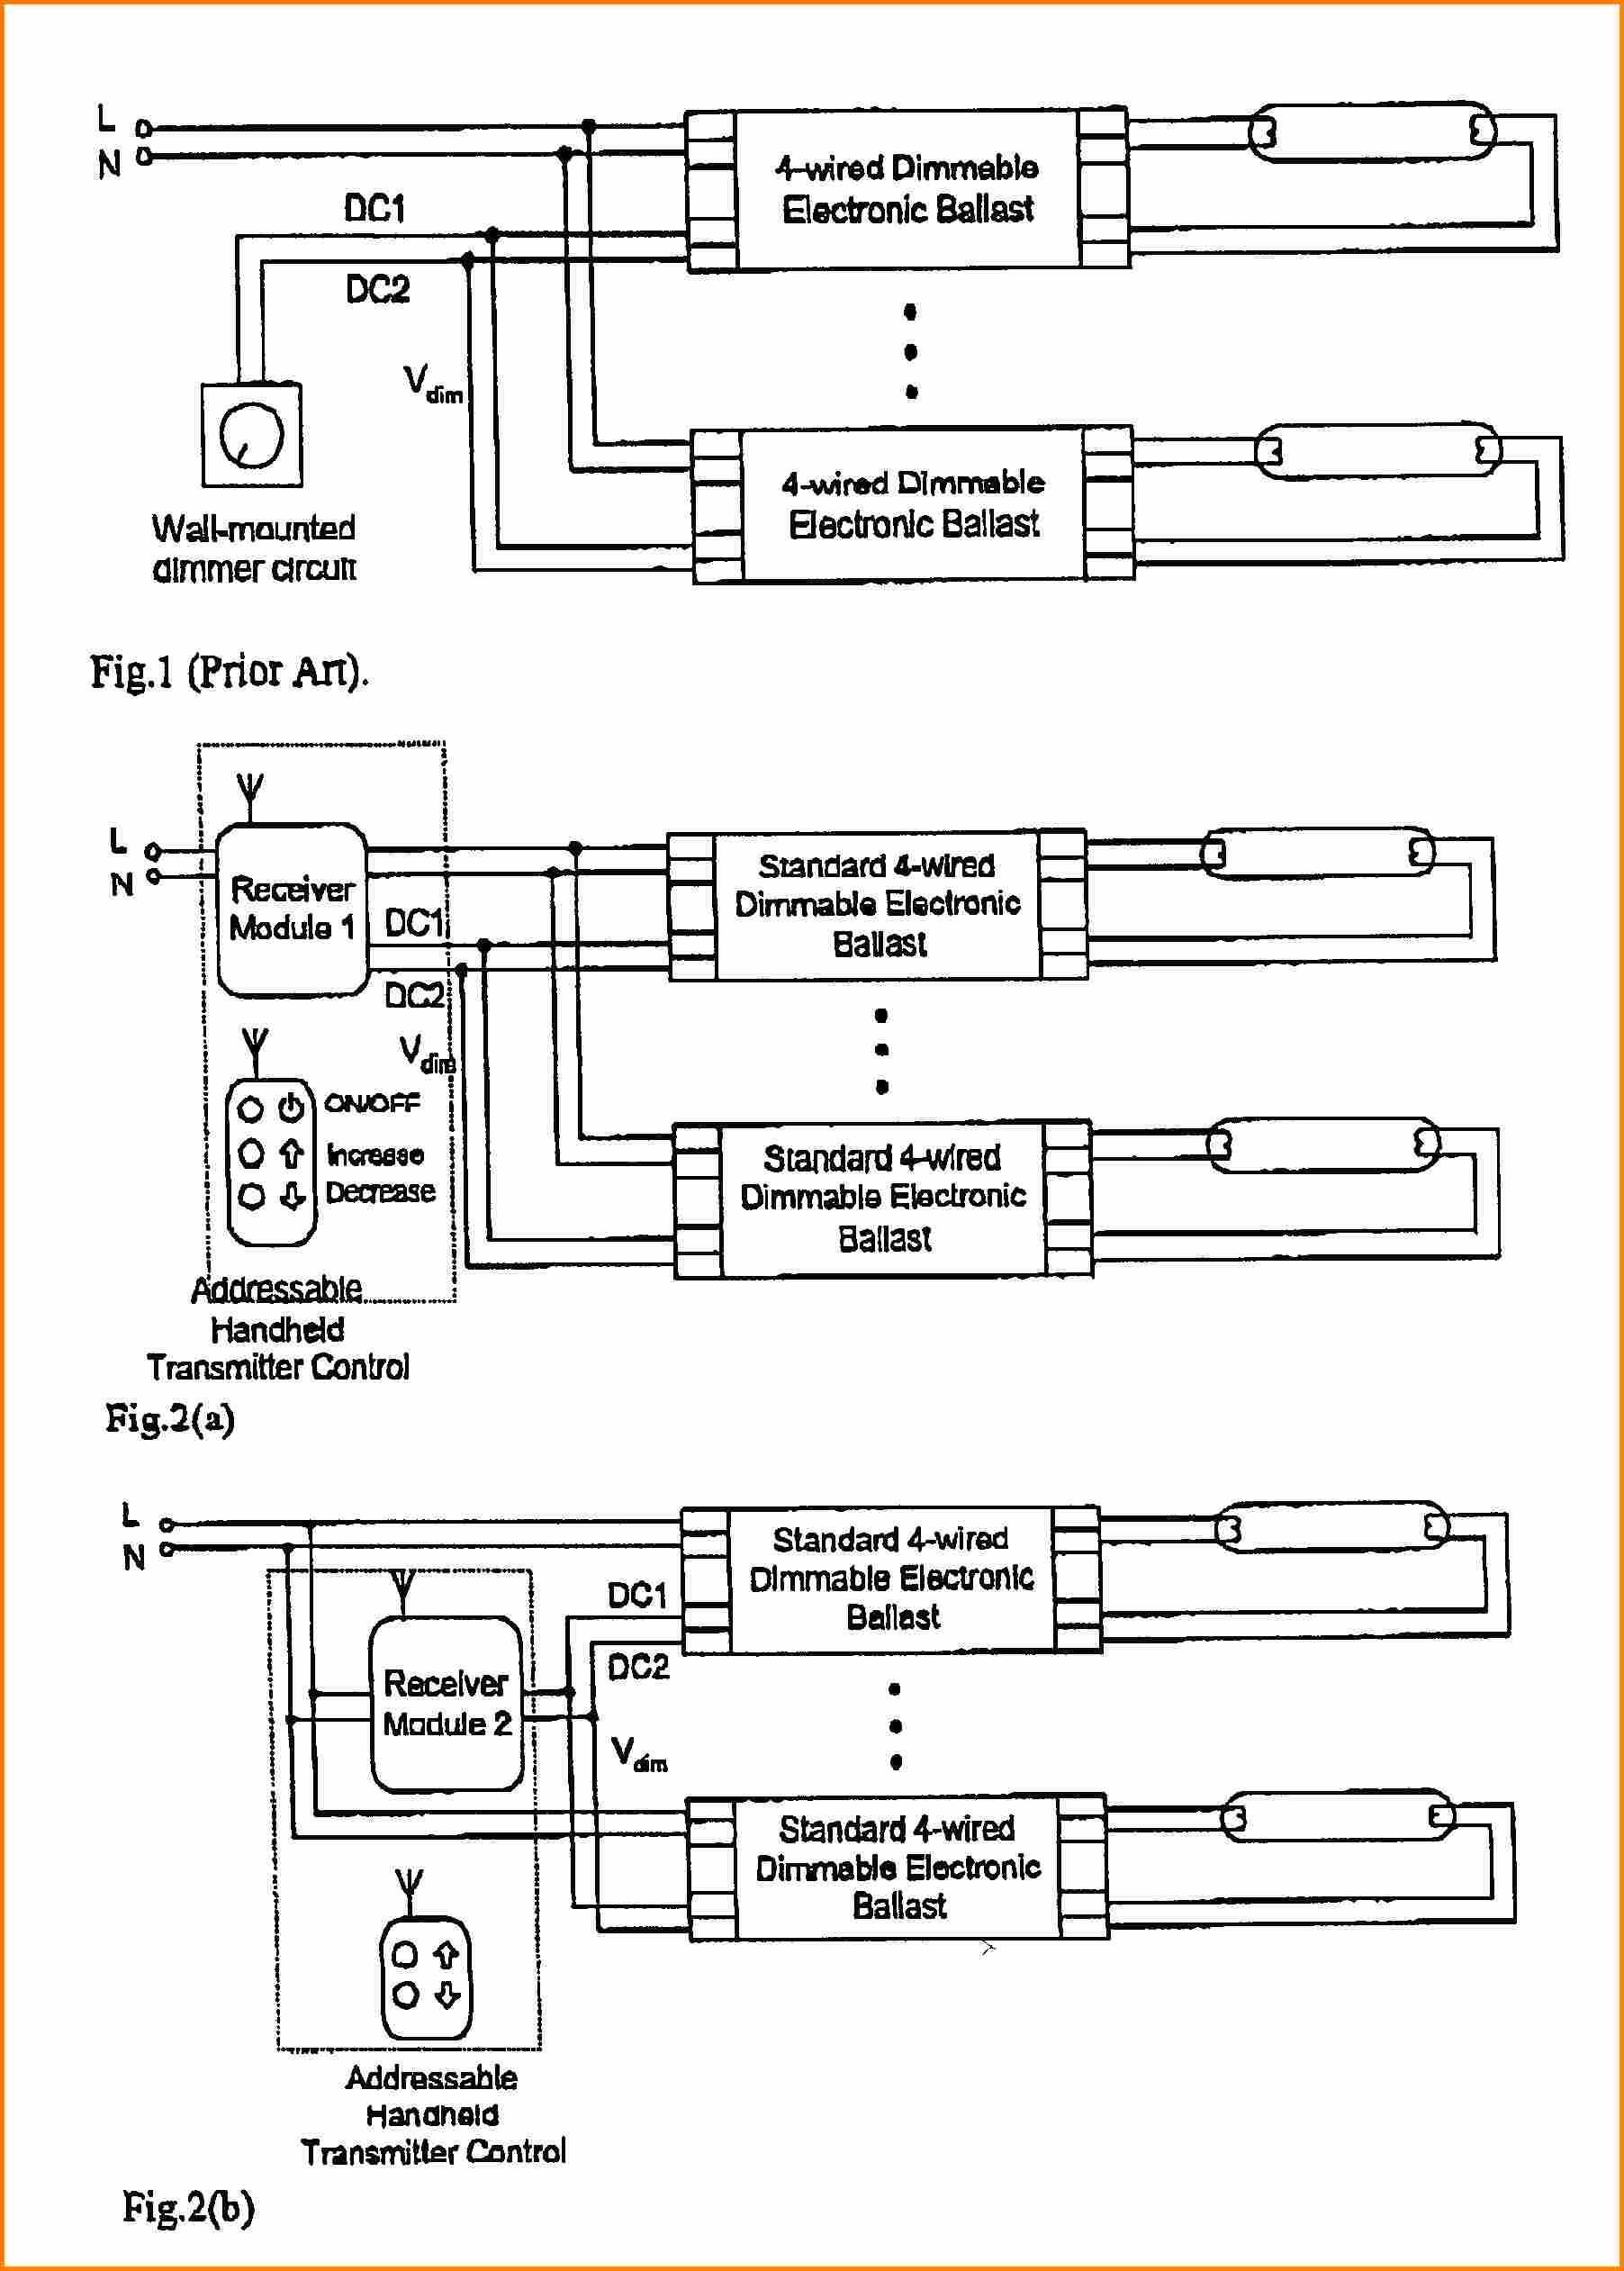 Led T8 Replacement Wiring Diagram Free Download | Wiring Diagram - Led Fluorescent Tube Replacement Wiring Diagram